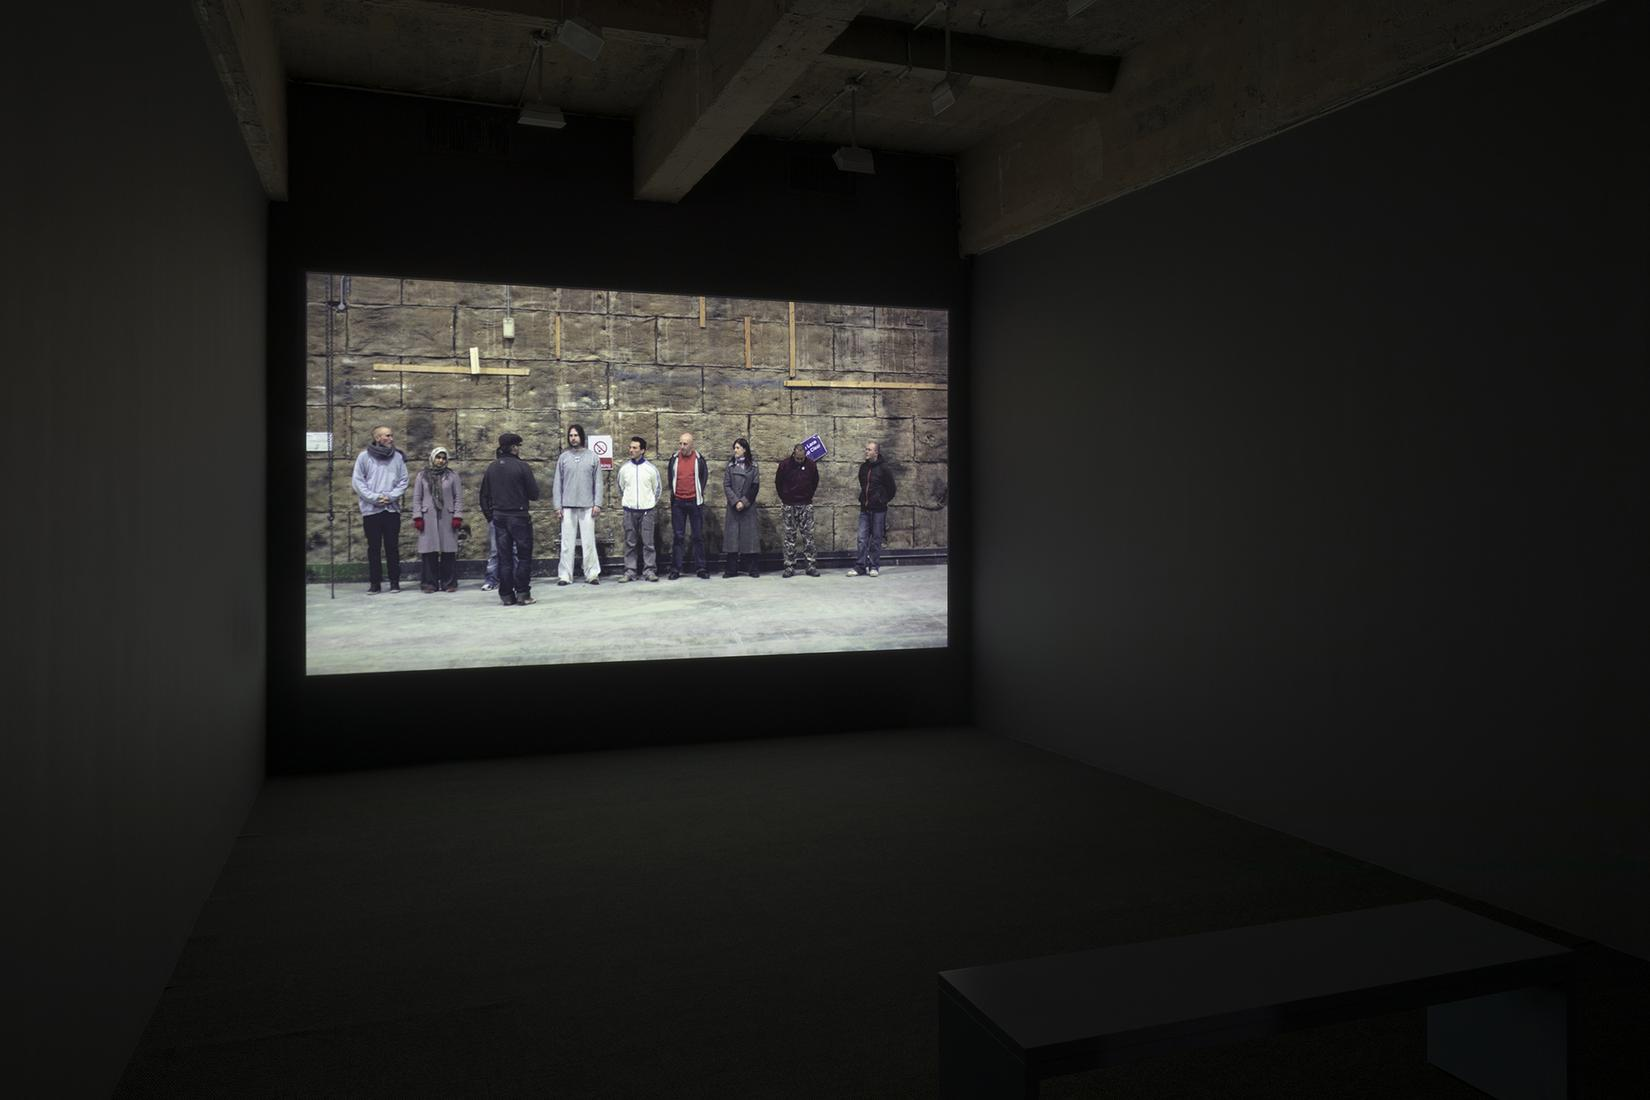 """This is a installation image of """"Songs in the Dark..."""